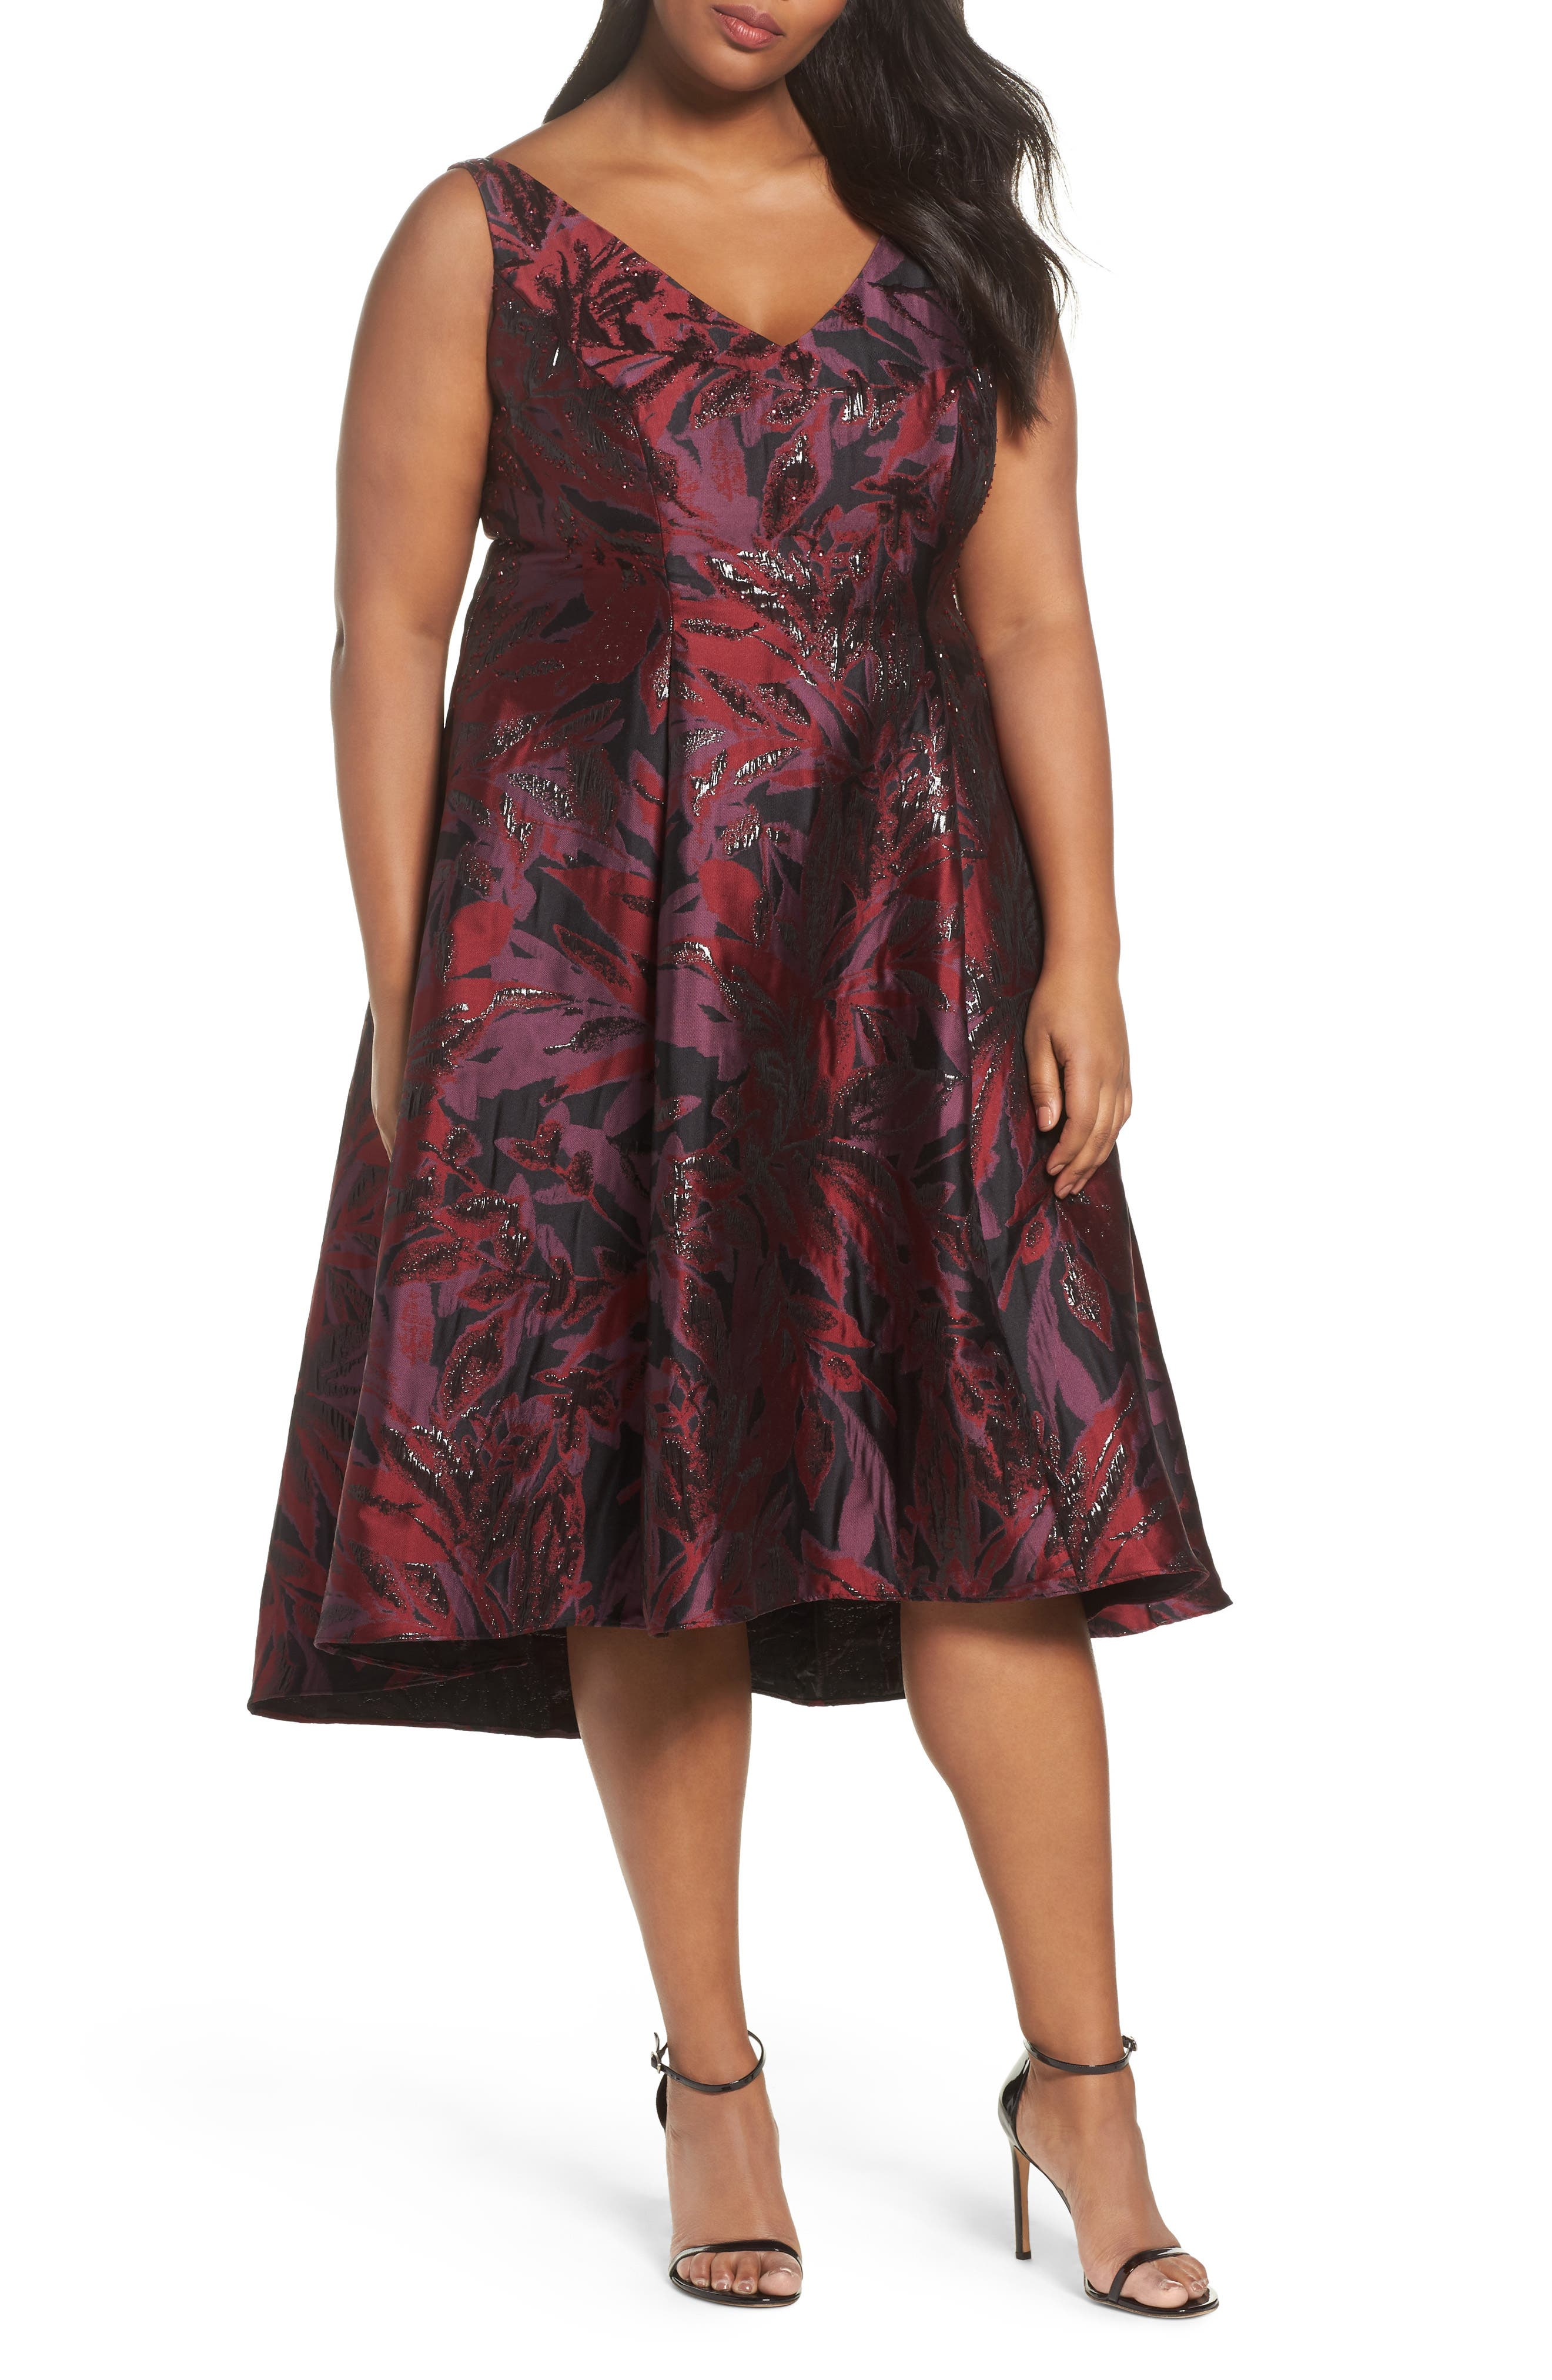 Main Image - Adrianna Papell Metallic Floral Jacquard Fit & Flare Dress (Plus Size)